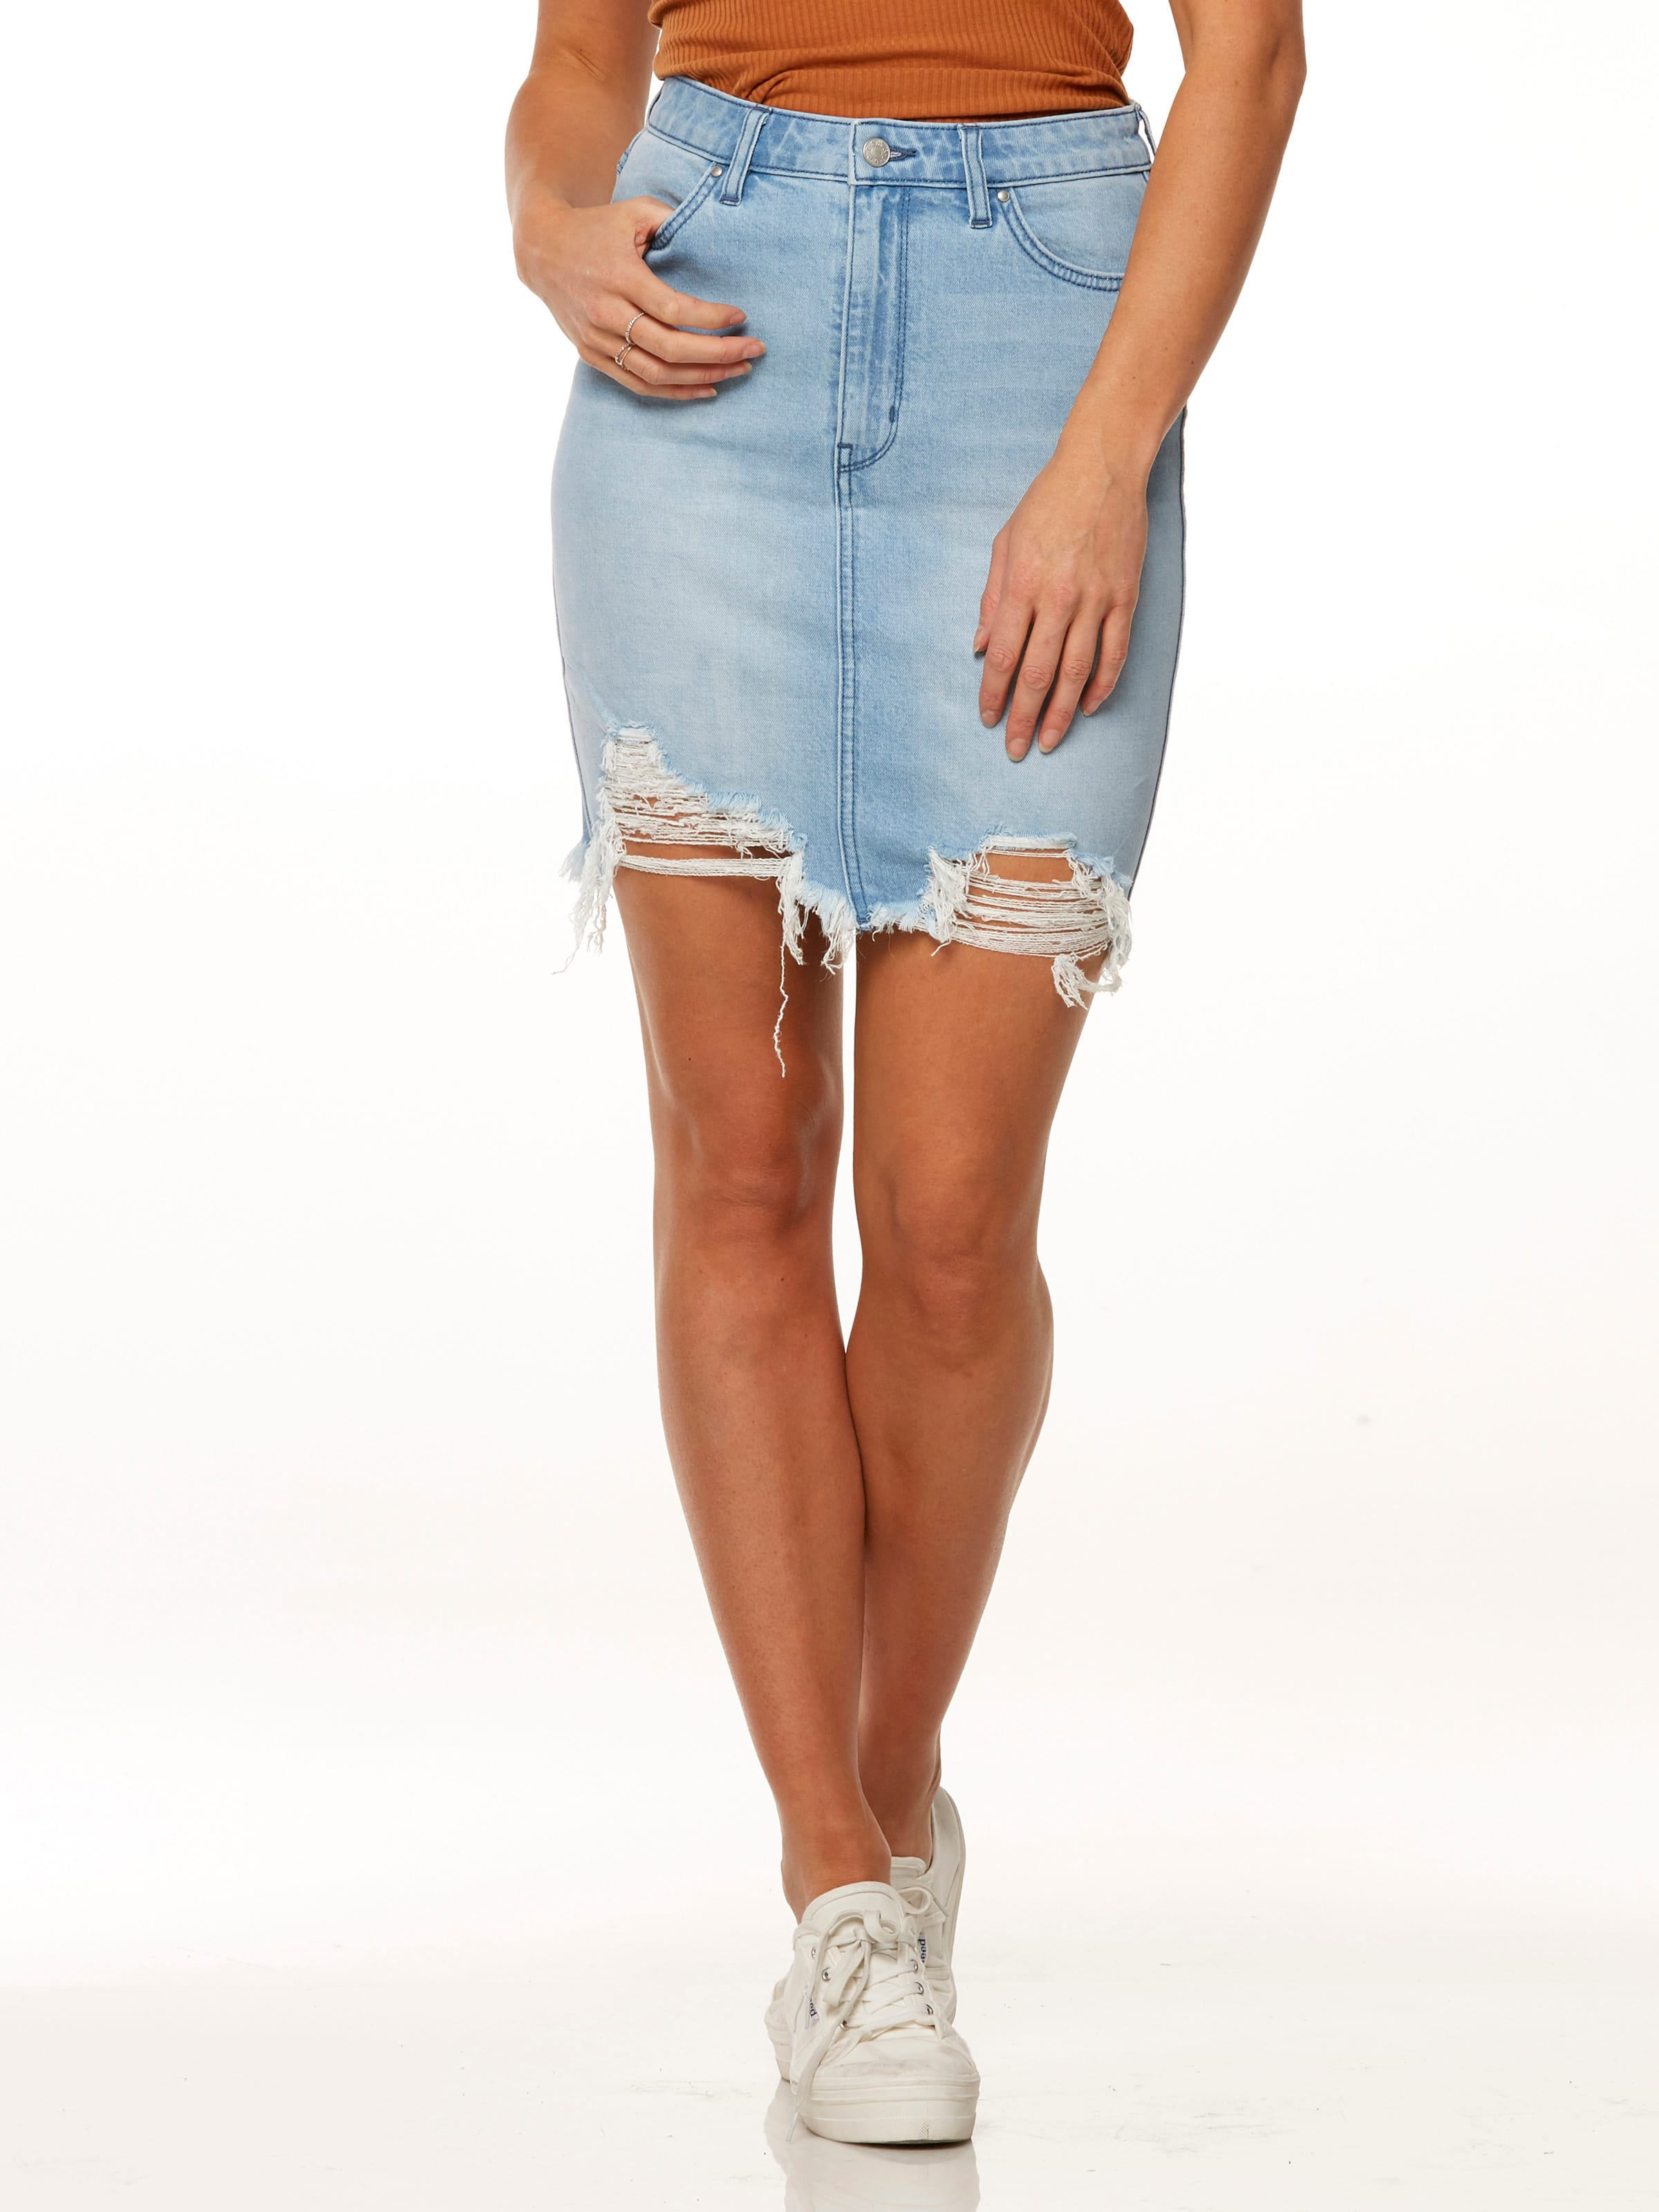 Just Jeans Riders By Lee Hi Rise Skirt Exposed Blue 9446652